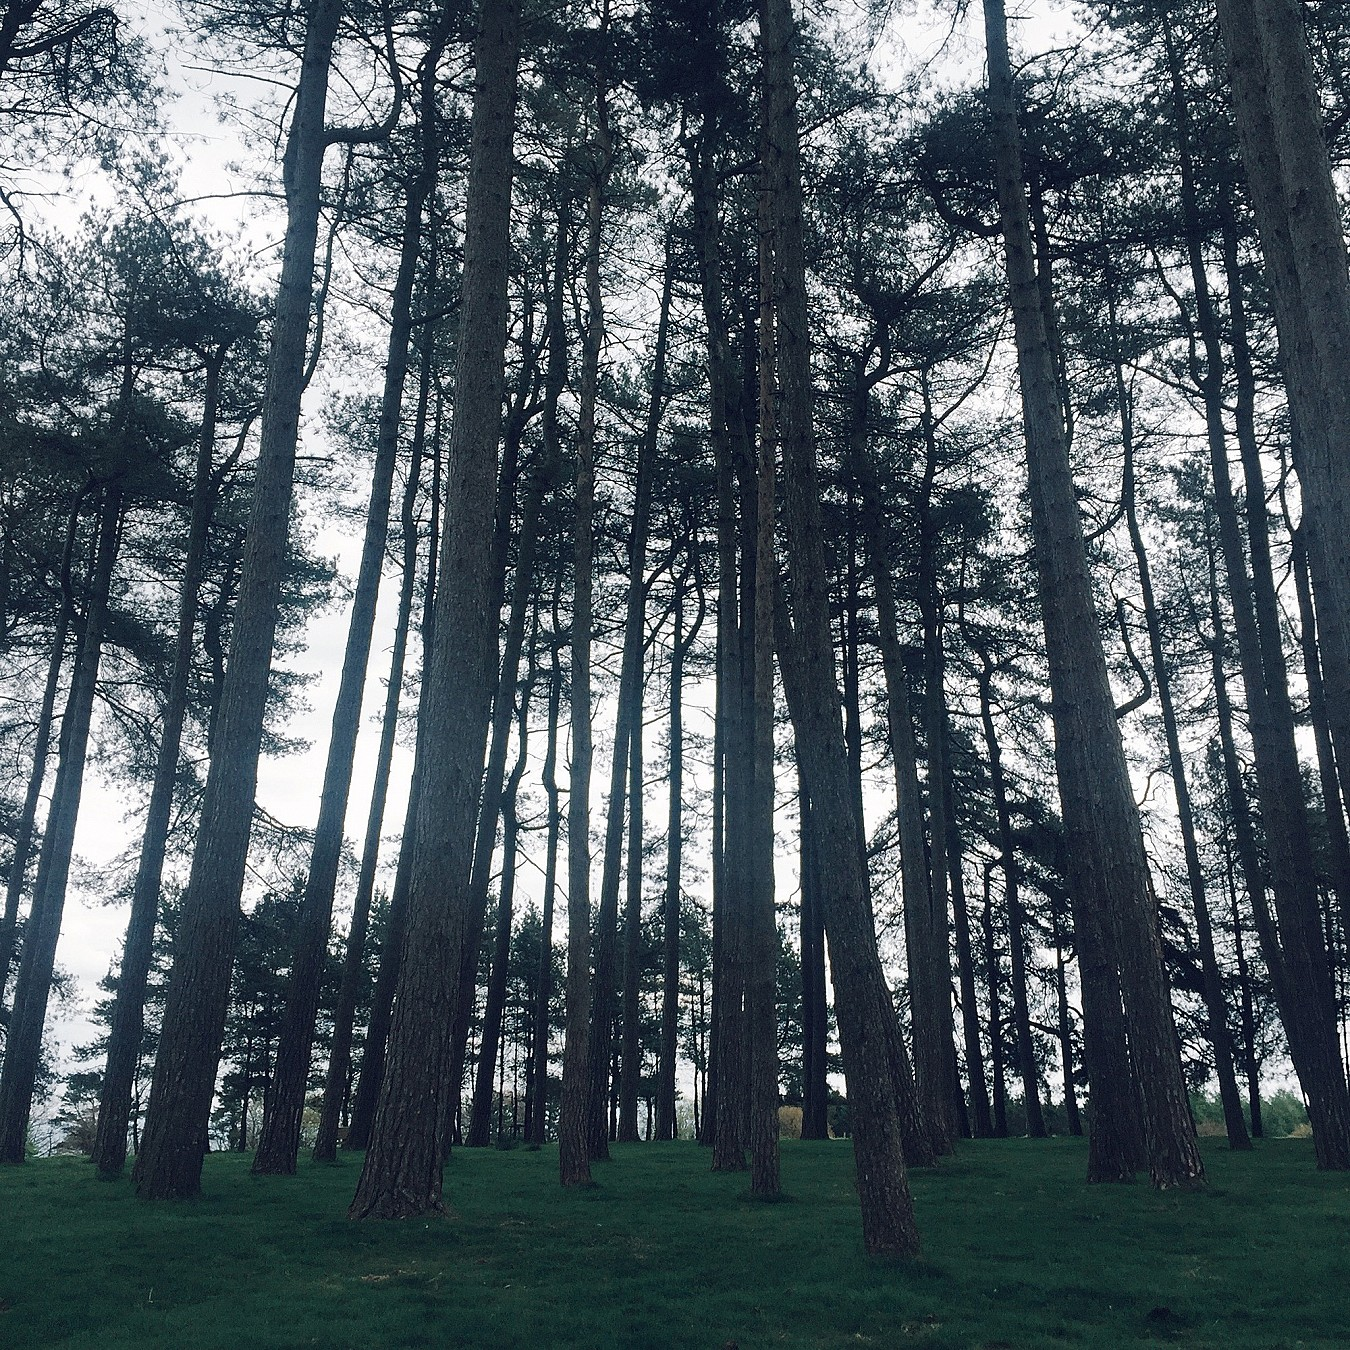 A group of tall pine trees.